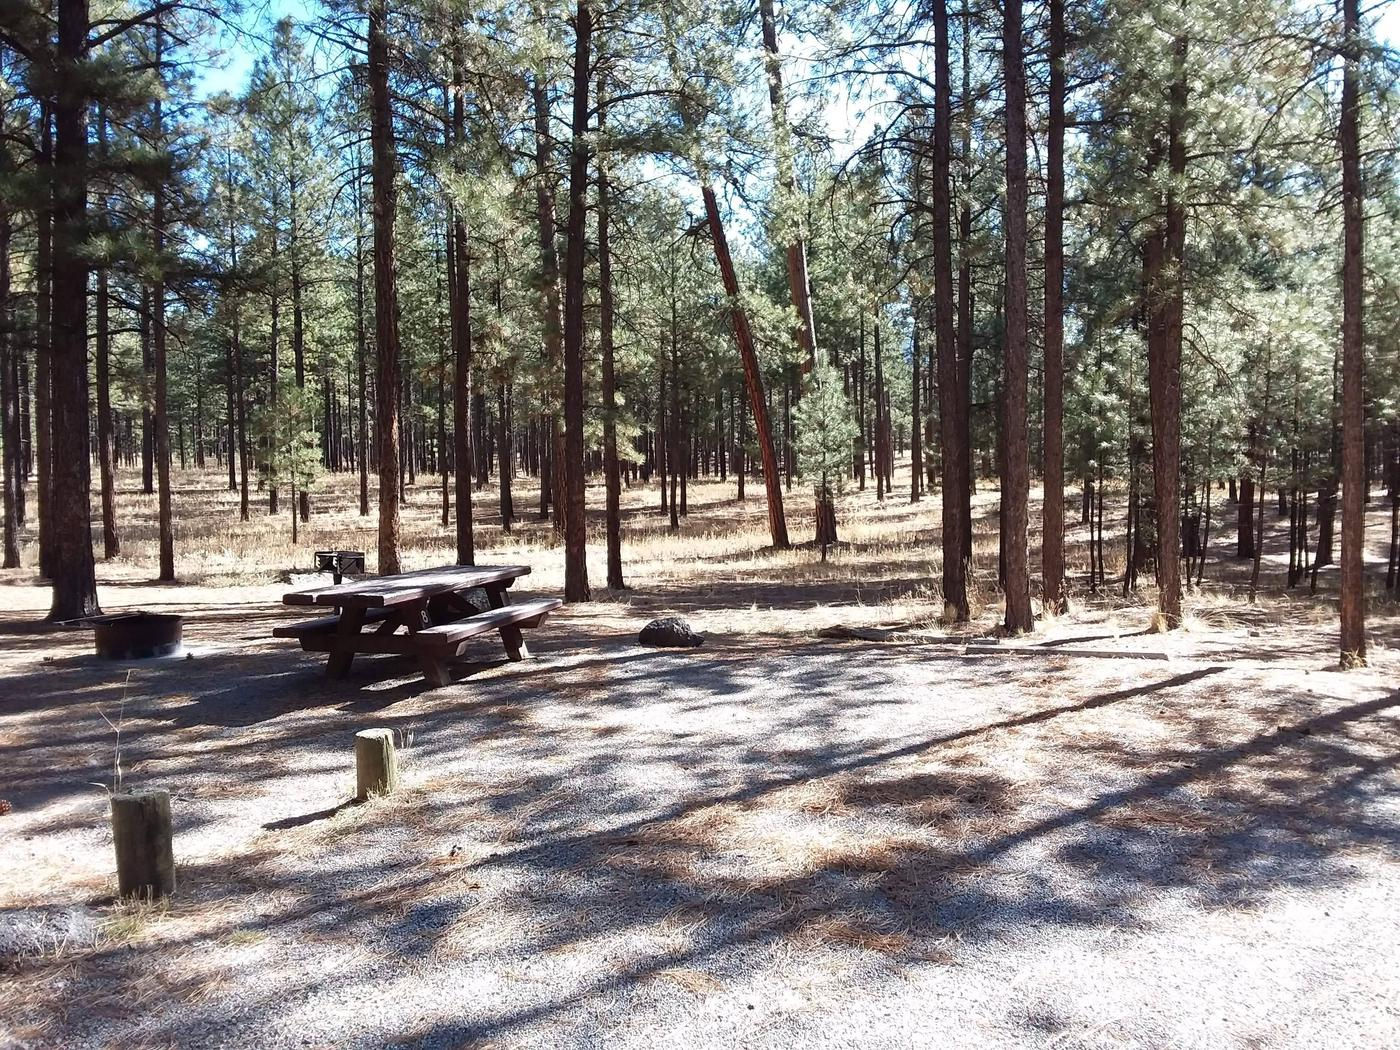 A forest of pines dominate the background of site 8 with its picnic table and fire pit. Site 8